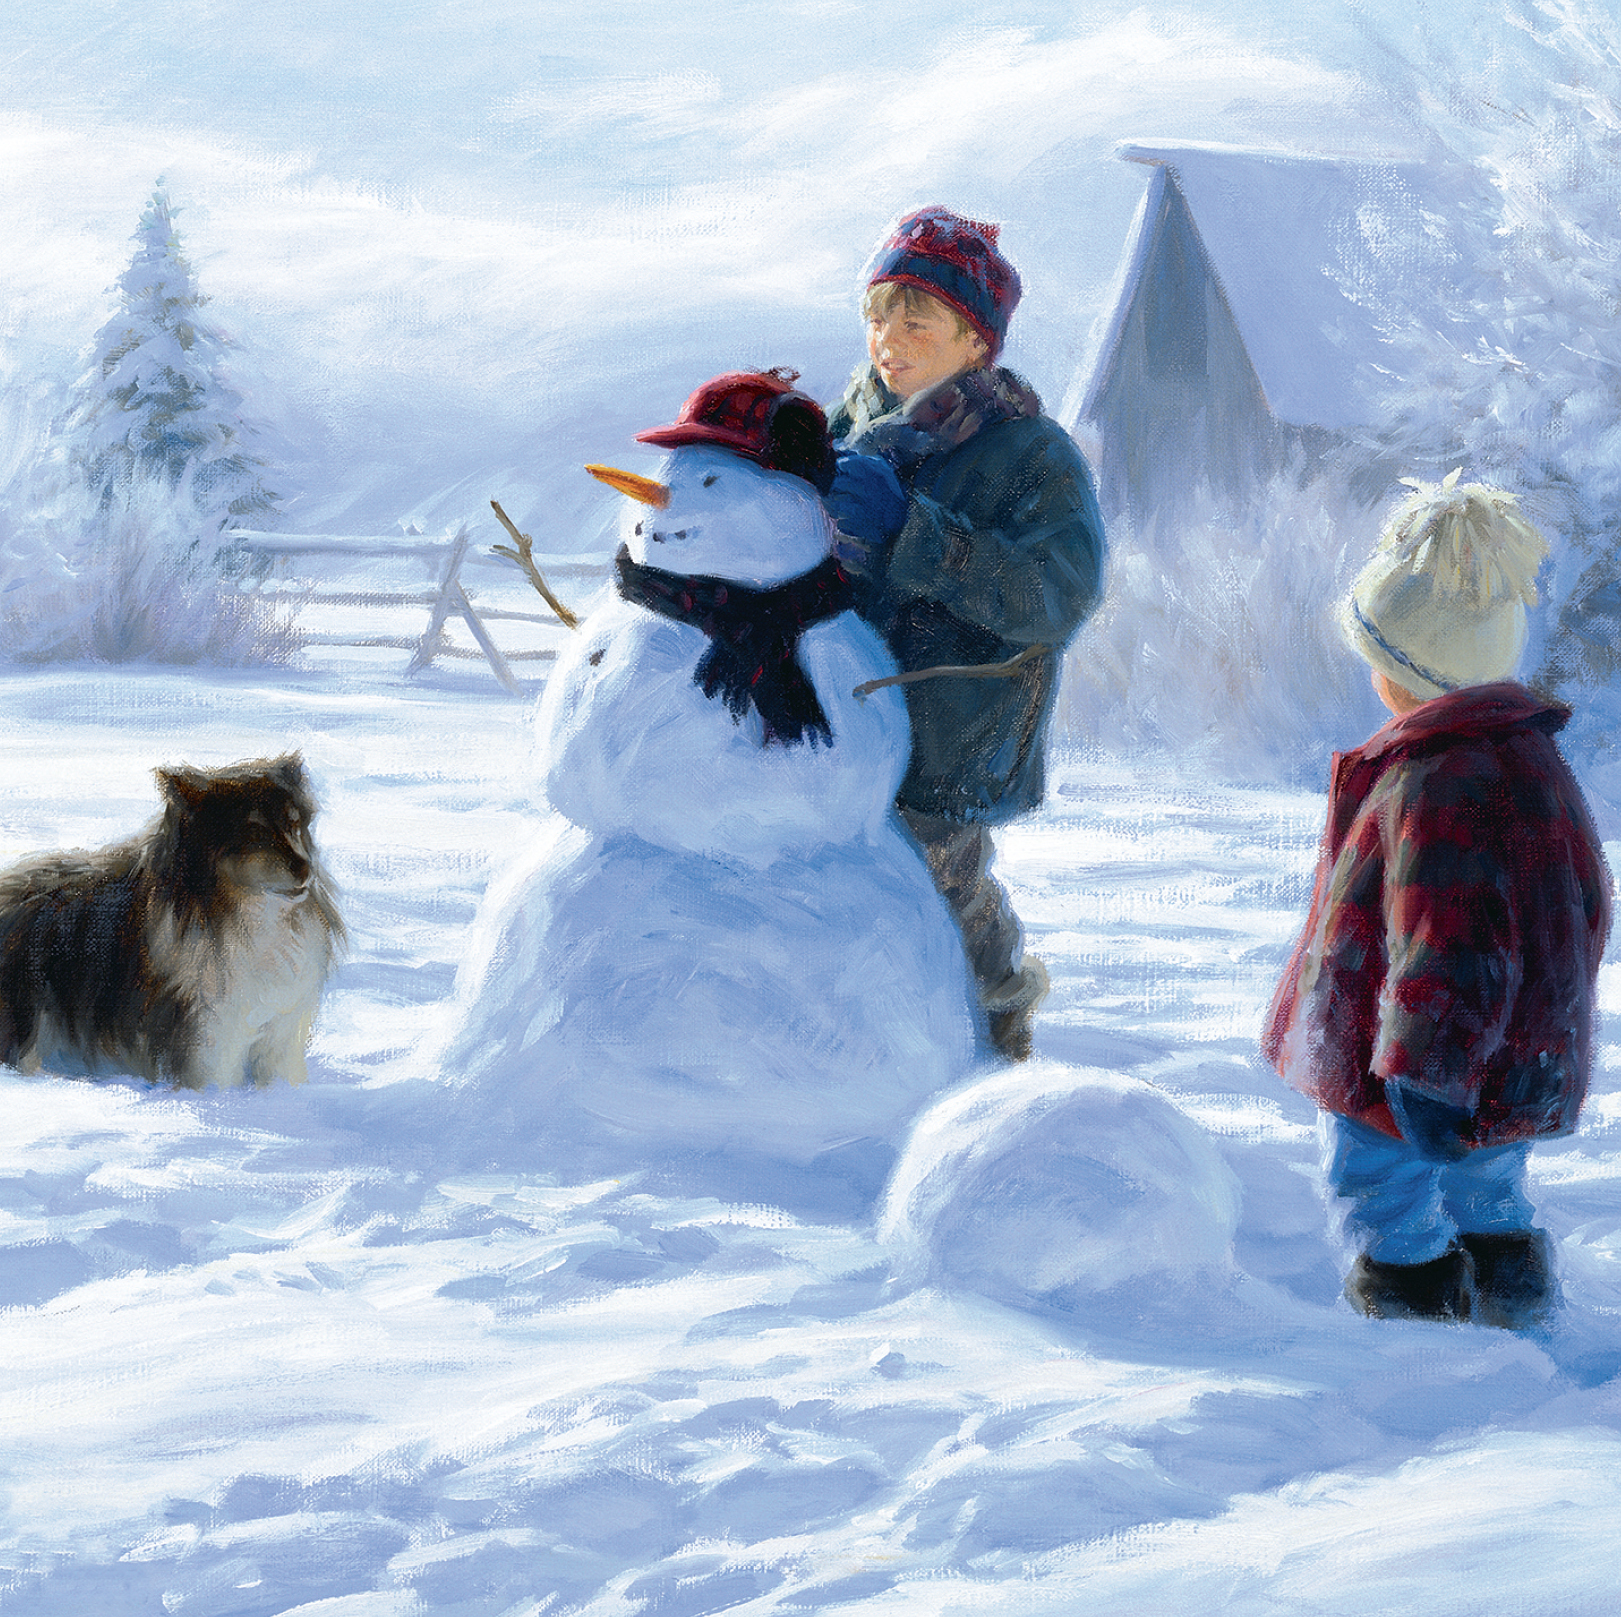 Two boys and a dog building snowmen